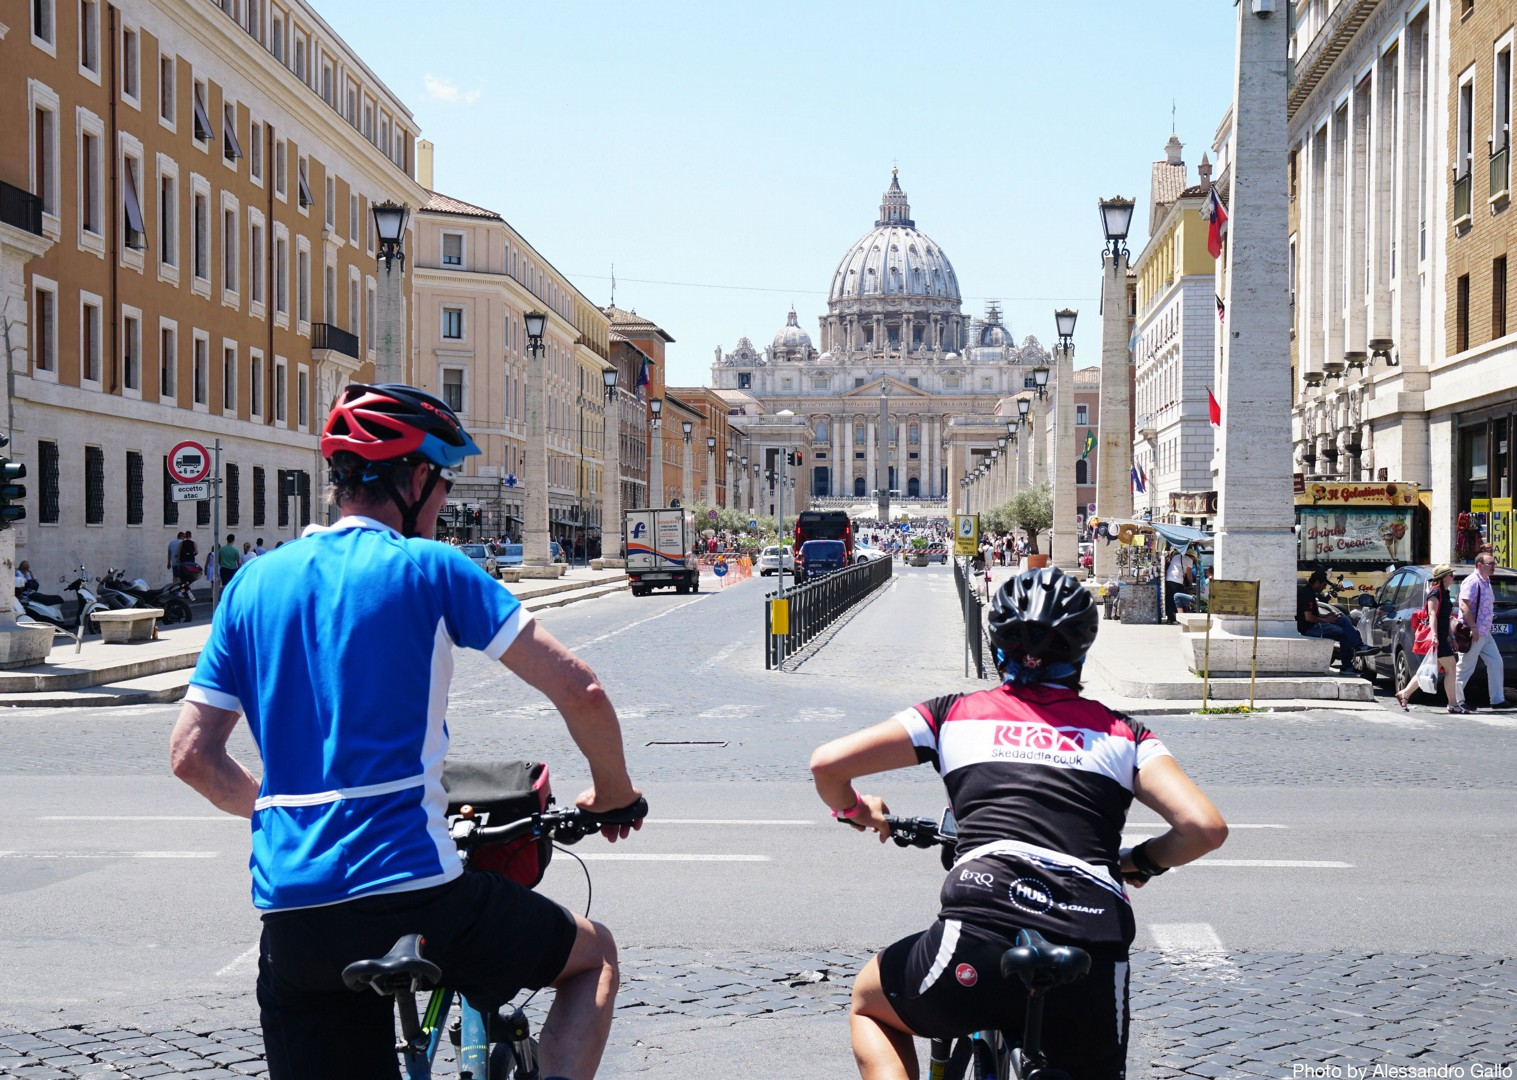 Italy-Via-Francigena-Tuscany-to-Rome-Guided-Leisure-Cycling-Holiday-Vatican - Italy - Via Francigena (Tuscany to Rome) - Guided Leisure Cycling Holiday - Italia Leisure and Family Cycling